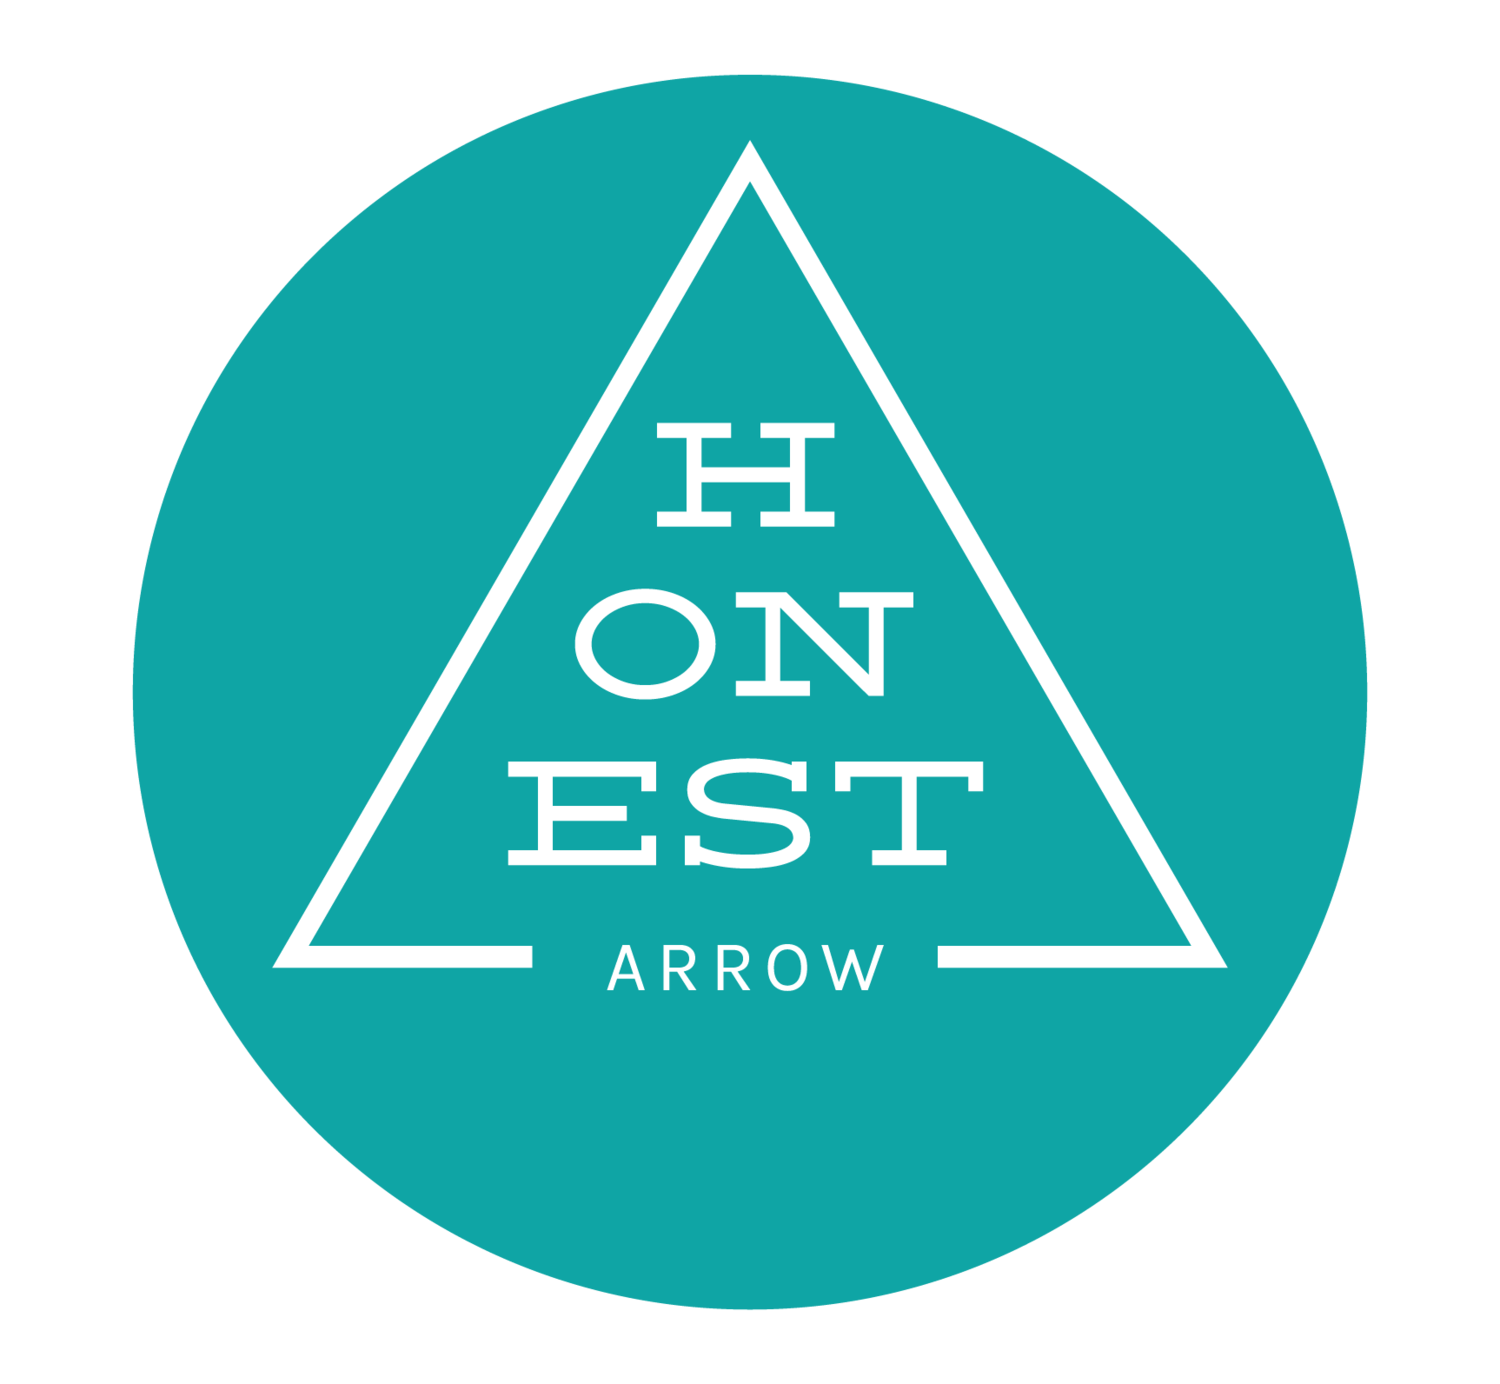 Honest Arrow